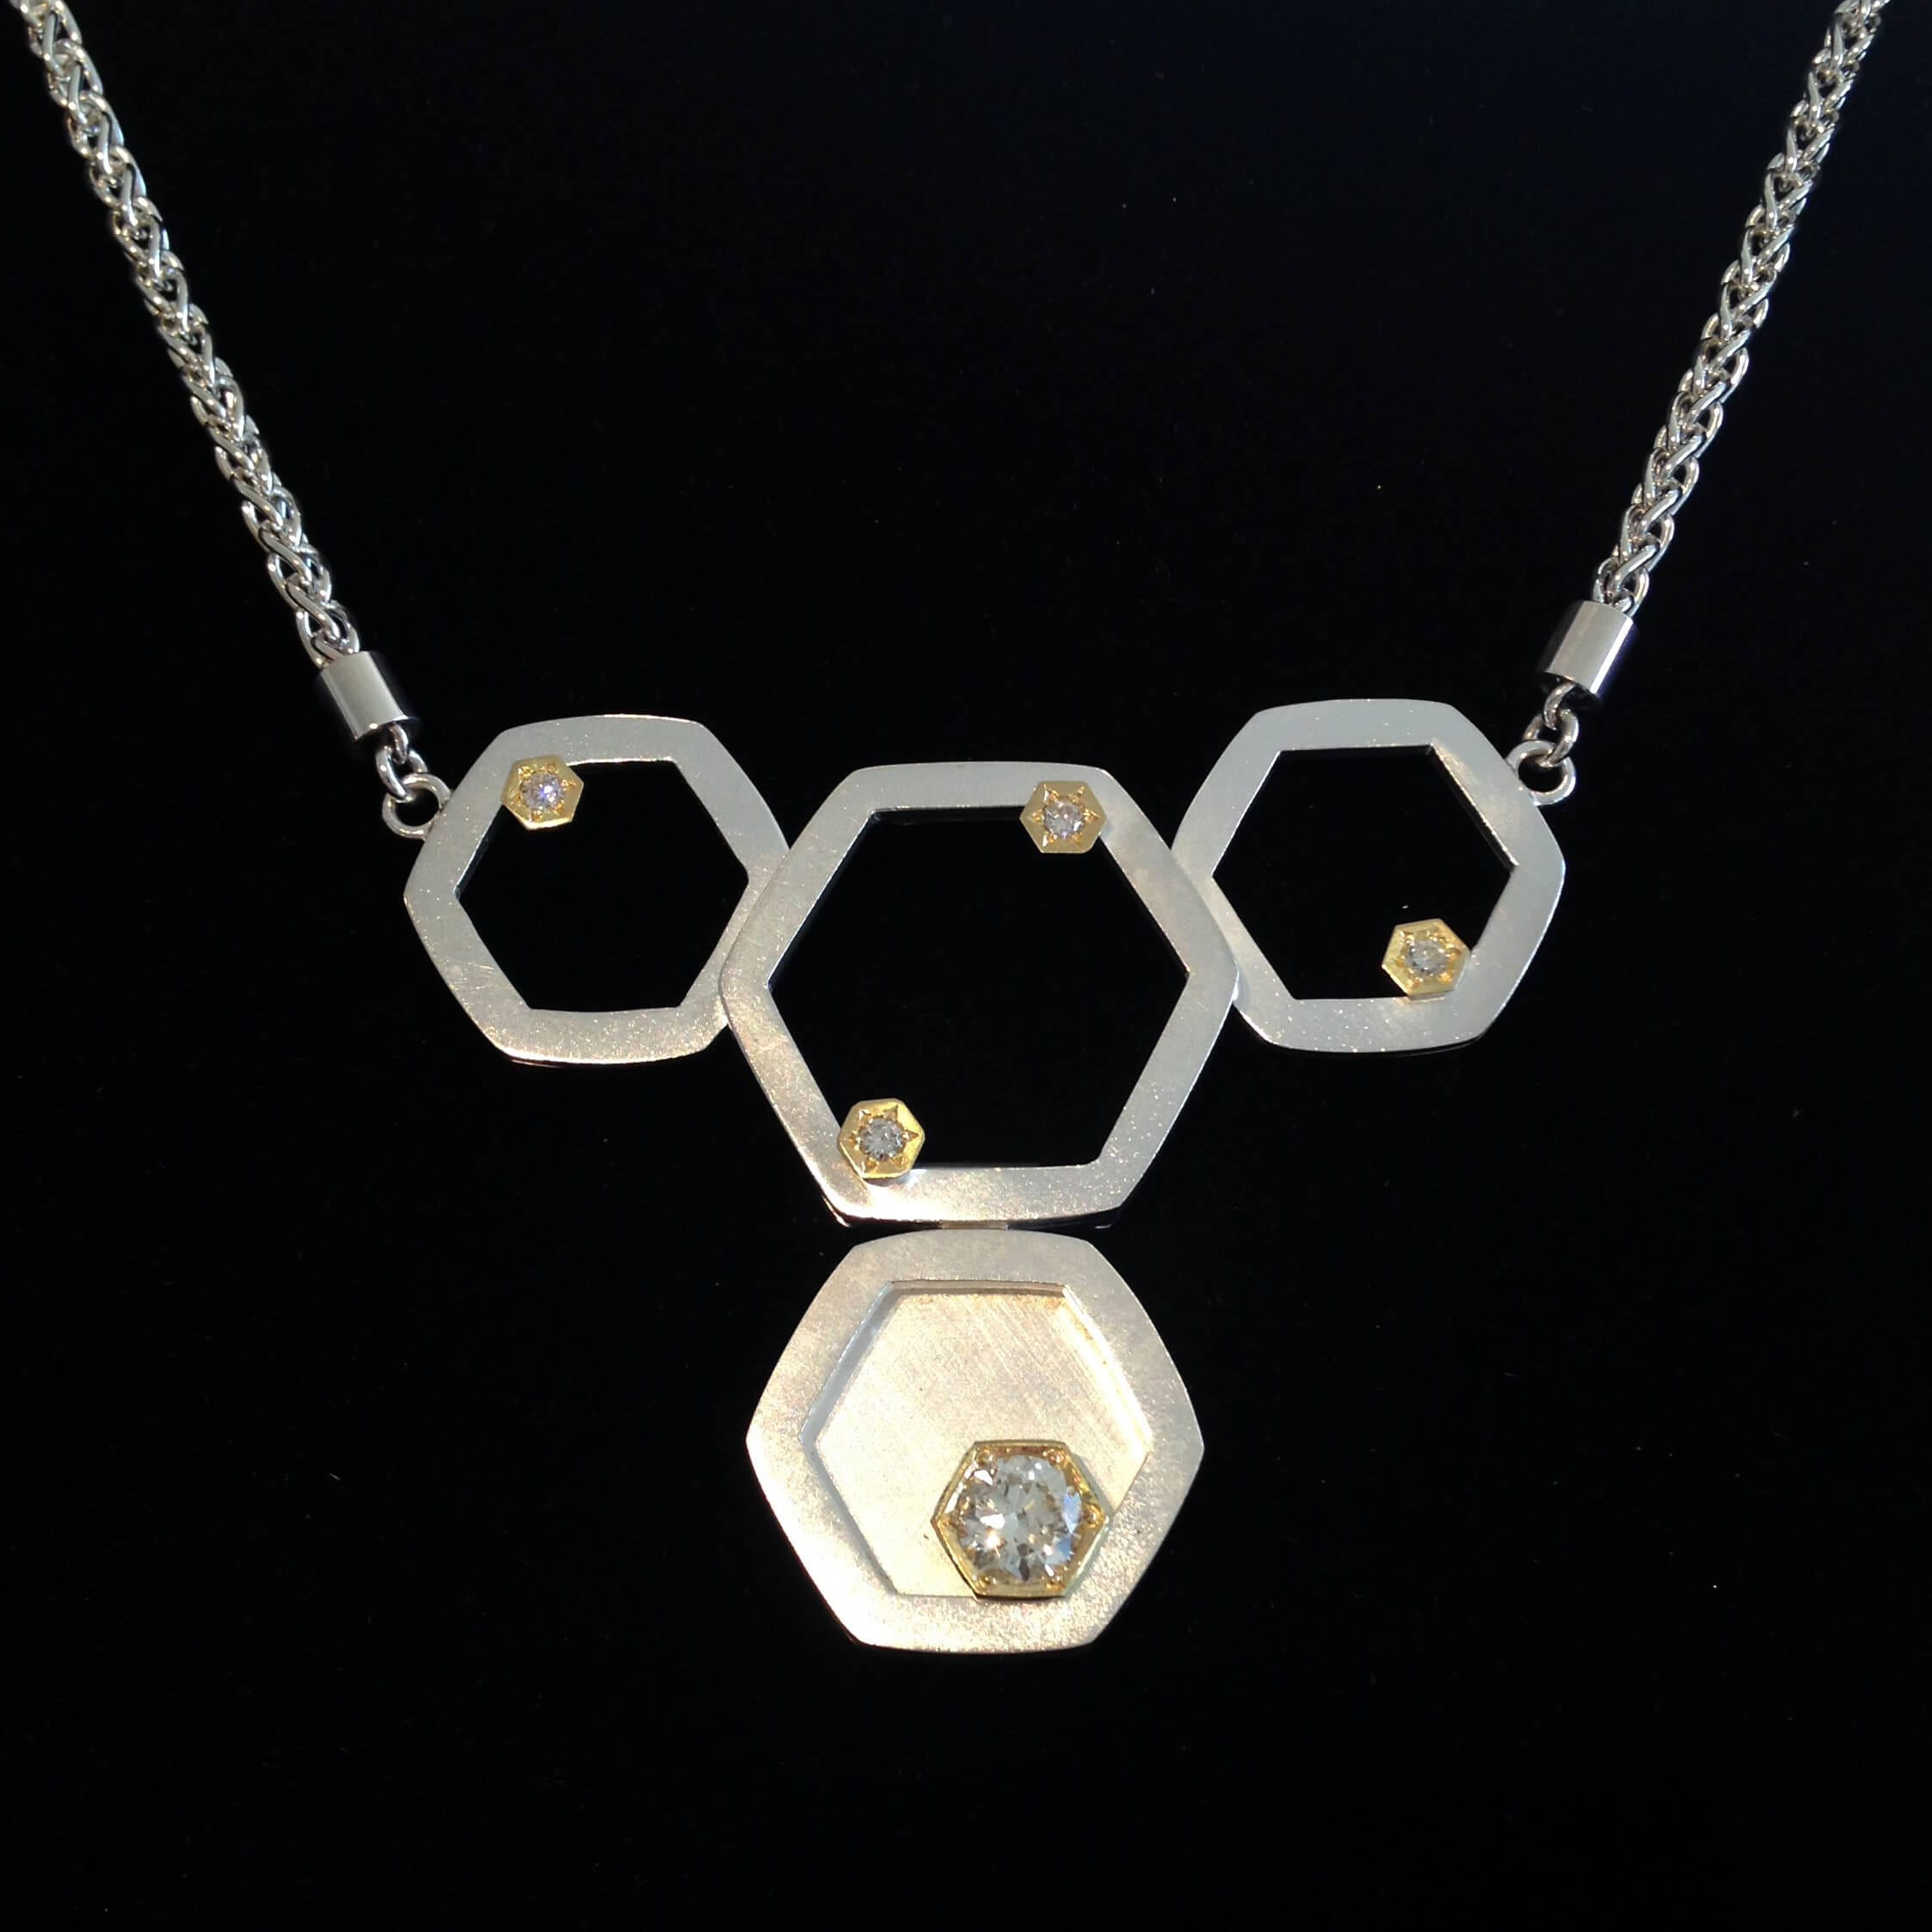 Bespoke handmade Yellow Gold and Silver honeycomb necklace